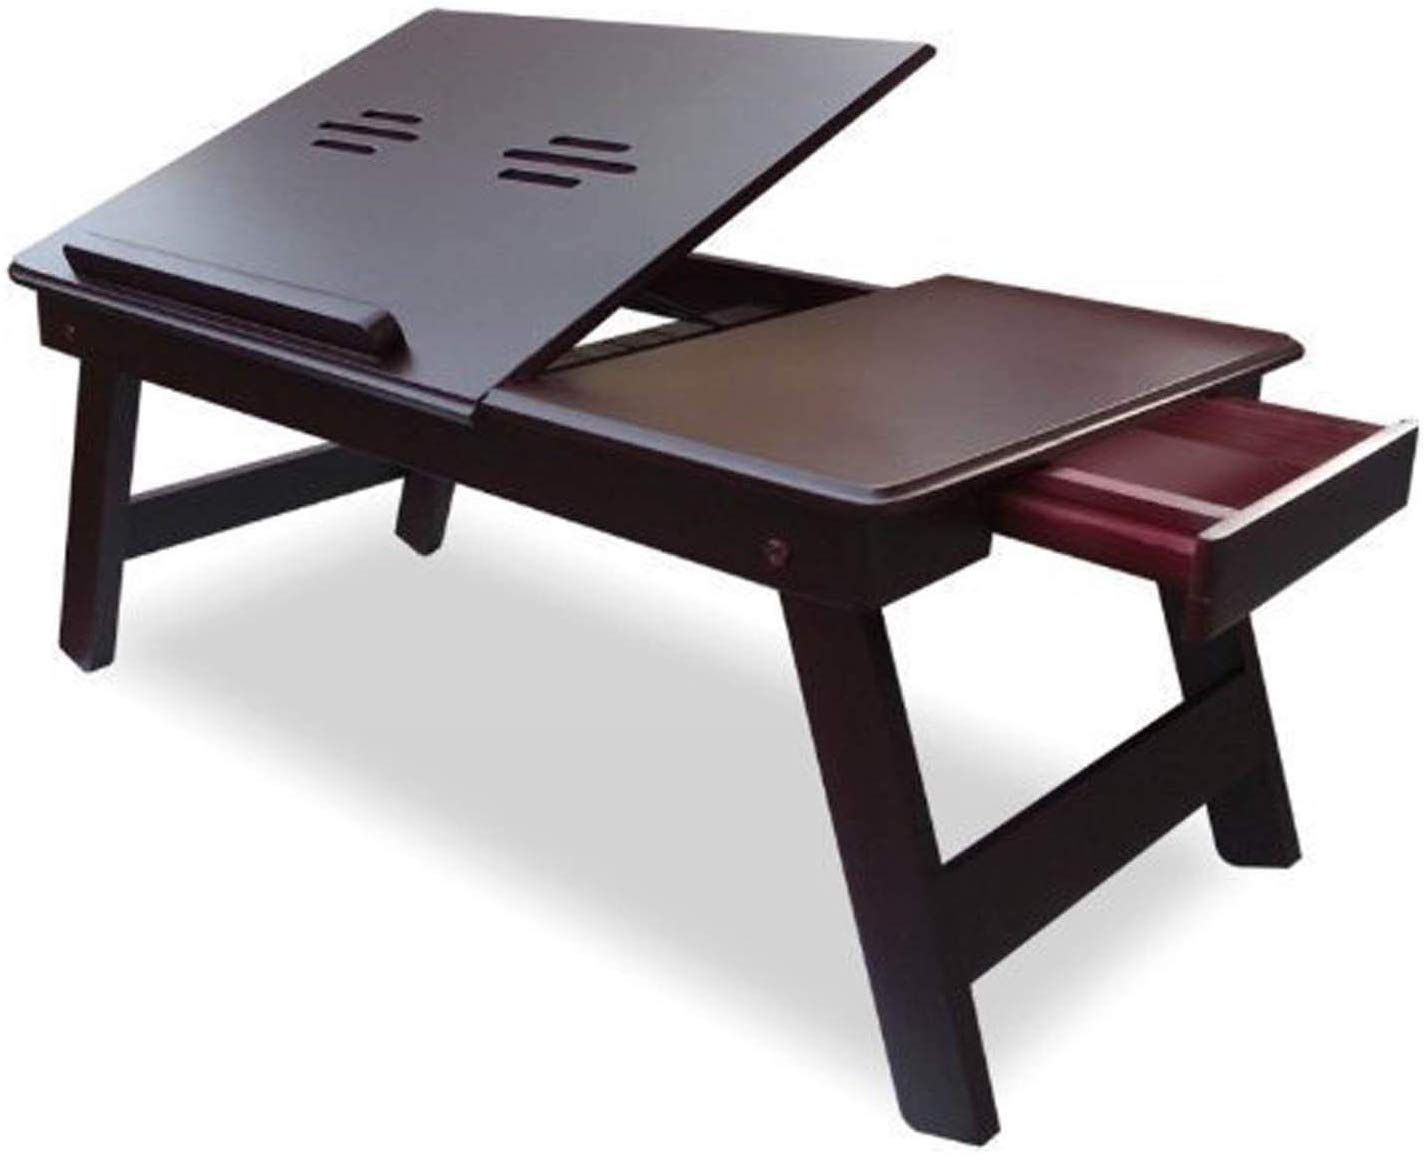 Portronics POR-704 Adjustable Laptop Table